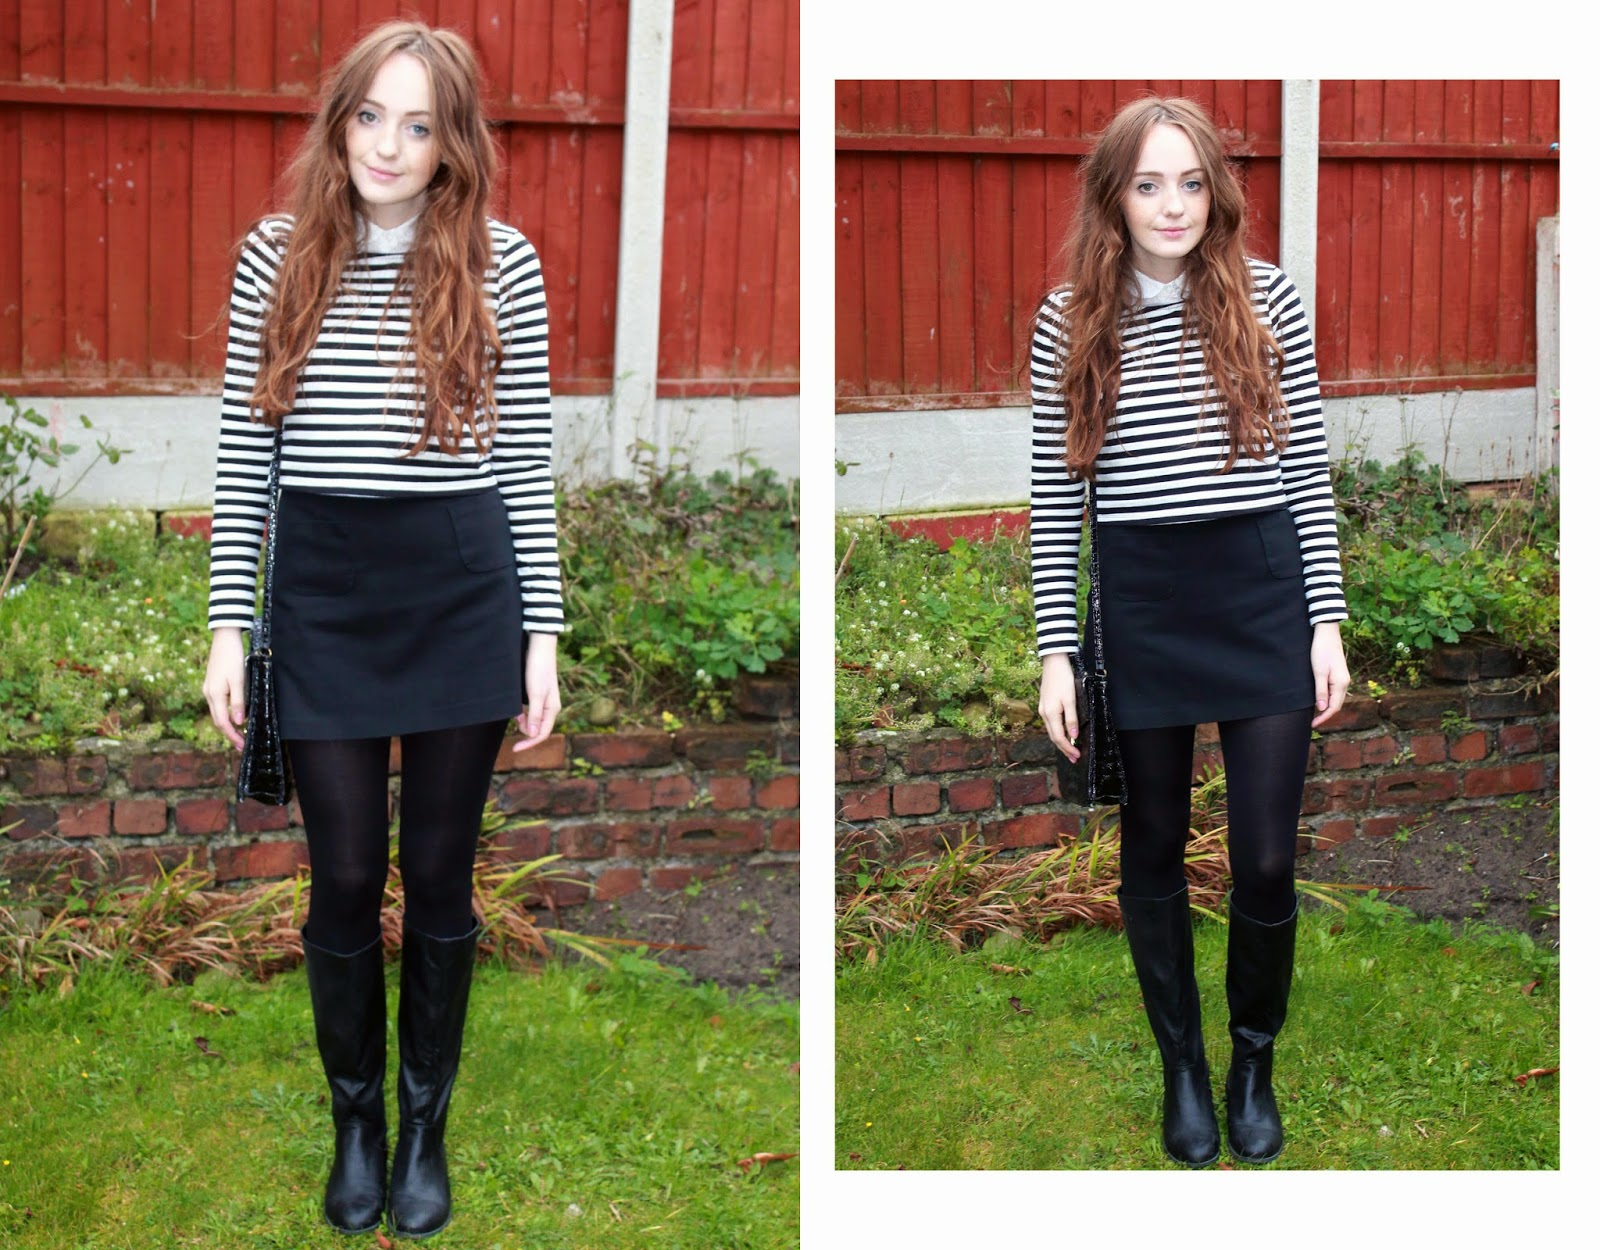 OOTD featuring black and white striped long sleeved top, peter pan collar white shirt, black aline skirt with front pockets from H&M, black primark tights and satchel and knee high black flat boots